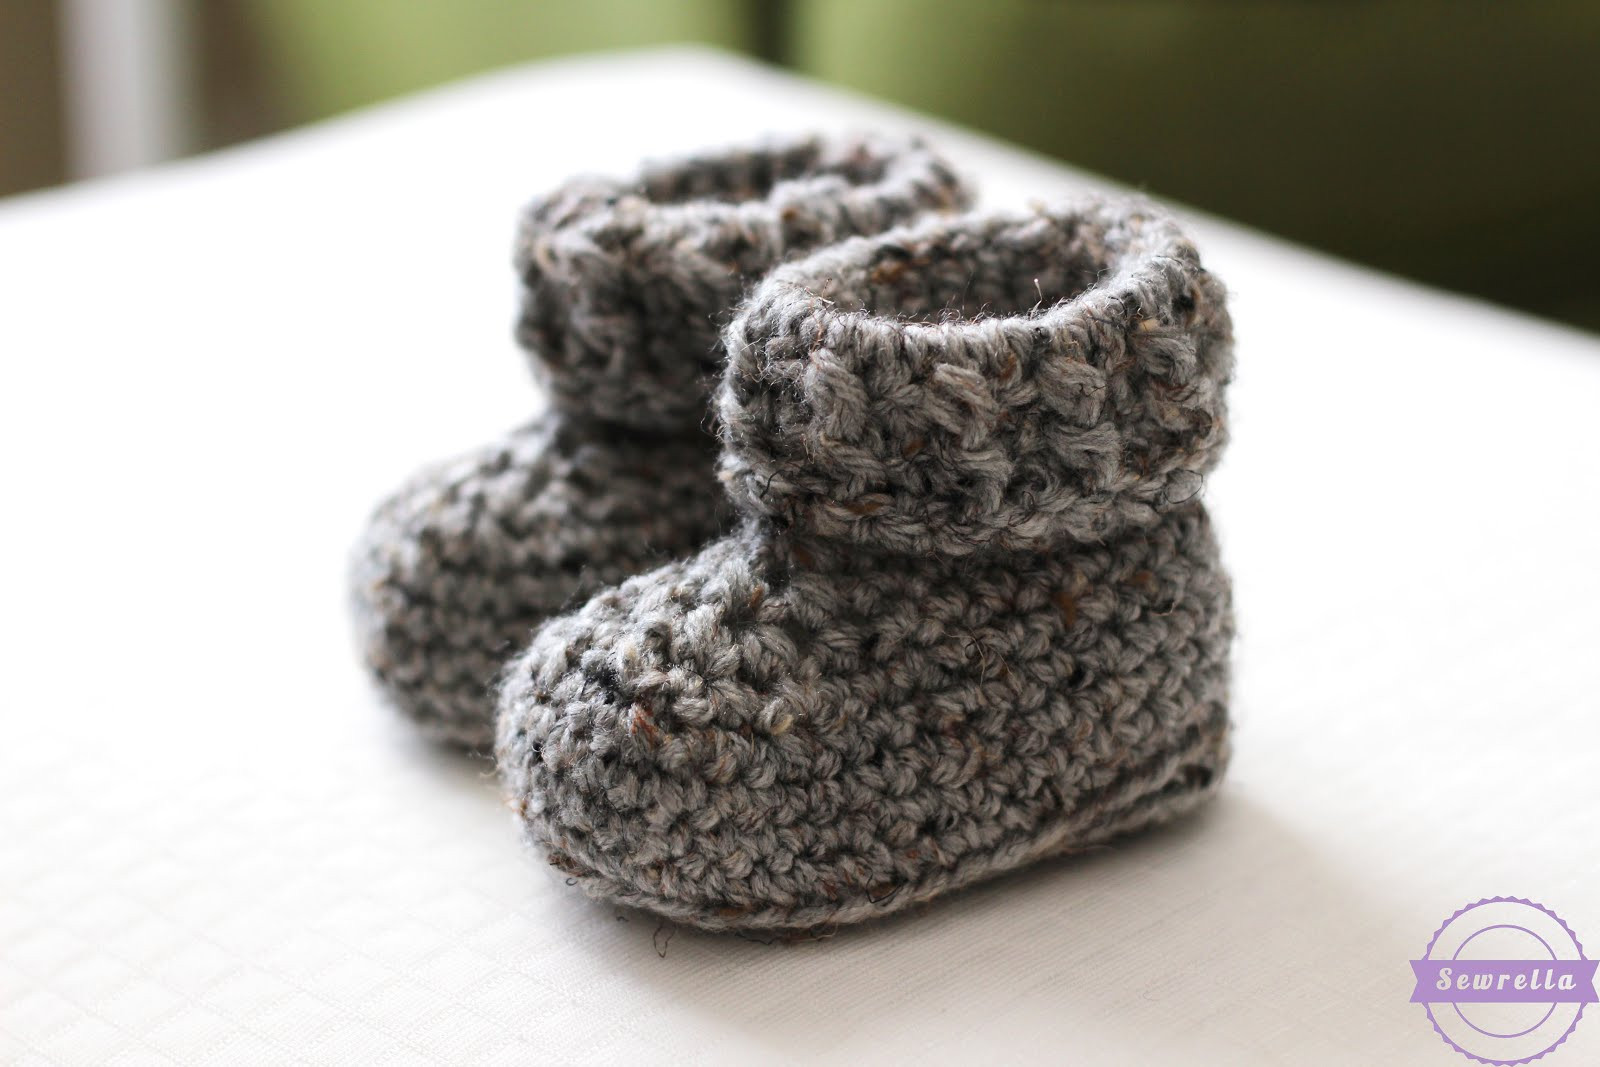 Best Of the Parker Crochet Baby Booties Sewrella Crochet Baby socks Of Marvelous 50 Images Crochet Baby socks